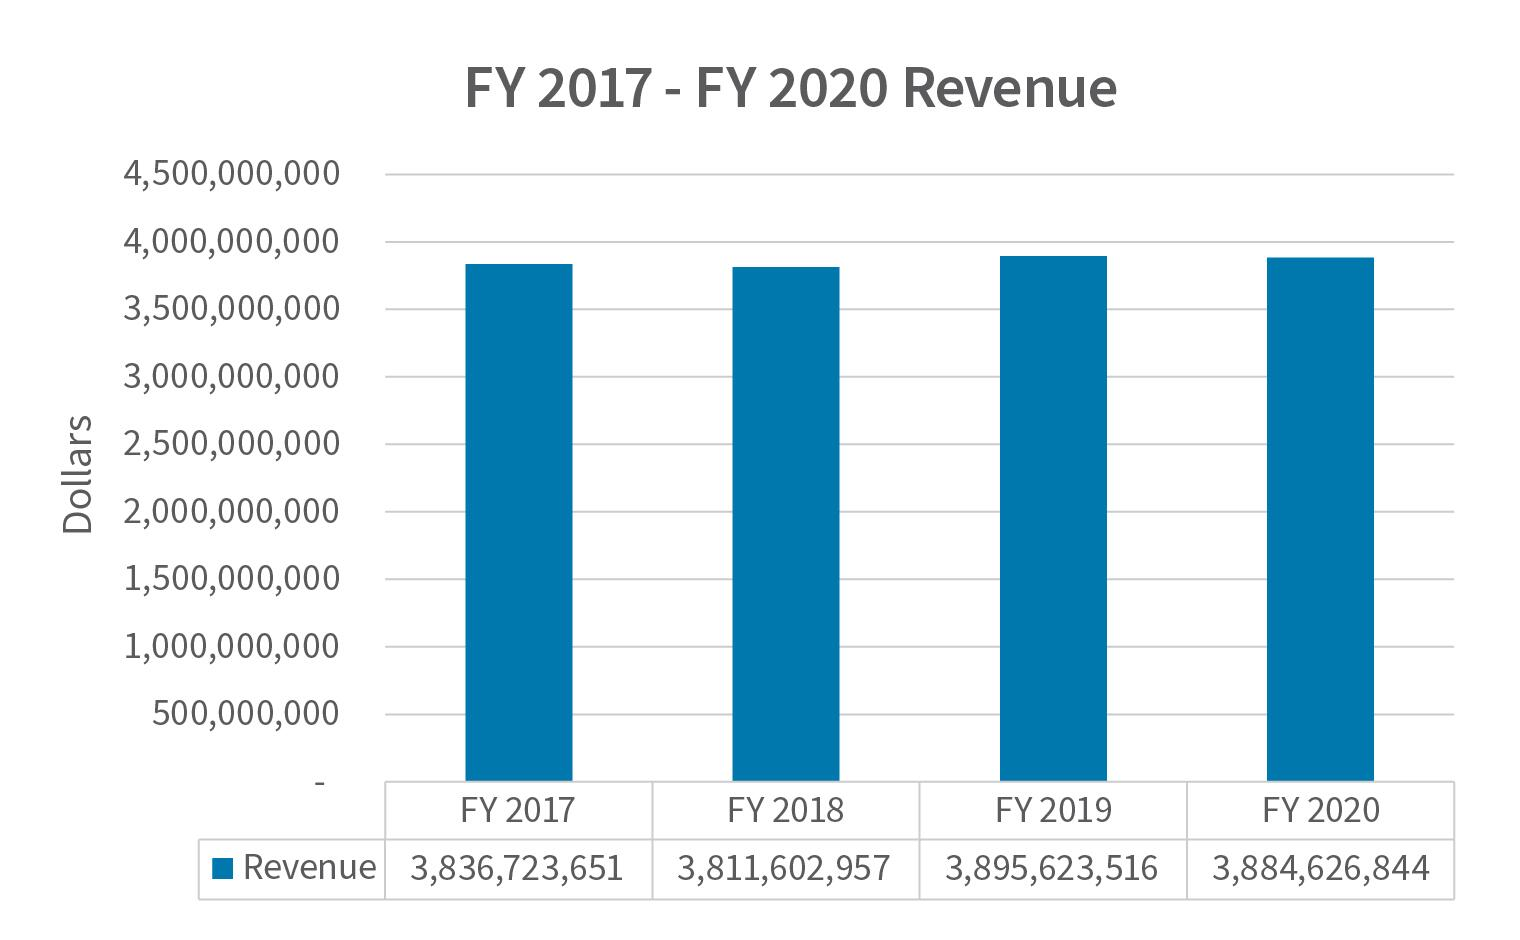 Chart reflecting Fiscal Year Revenue from 2017 to 2020. Fiscal year 2017 Revenue is 3,836,723,651 and Fiscal Year 2018 is 3,811,602,957 and Fiscal Year 2019 is 3, 895,623,516 and Fiscal Year 2020 is 3,884,626,844